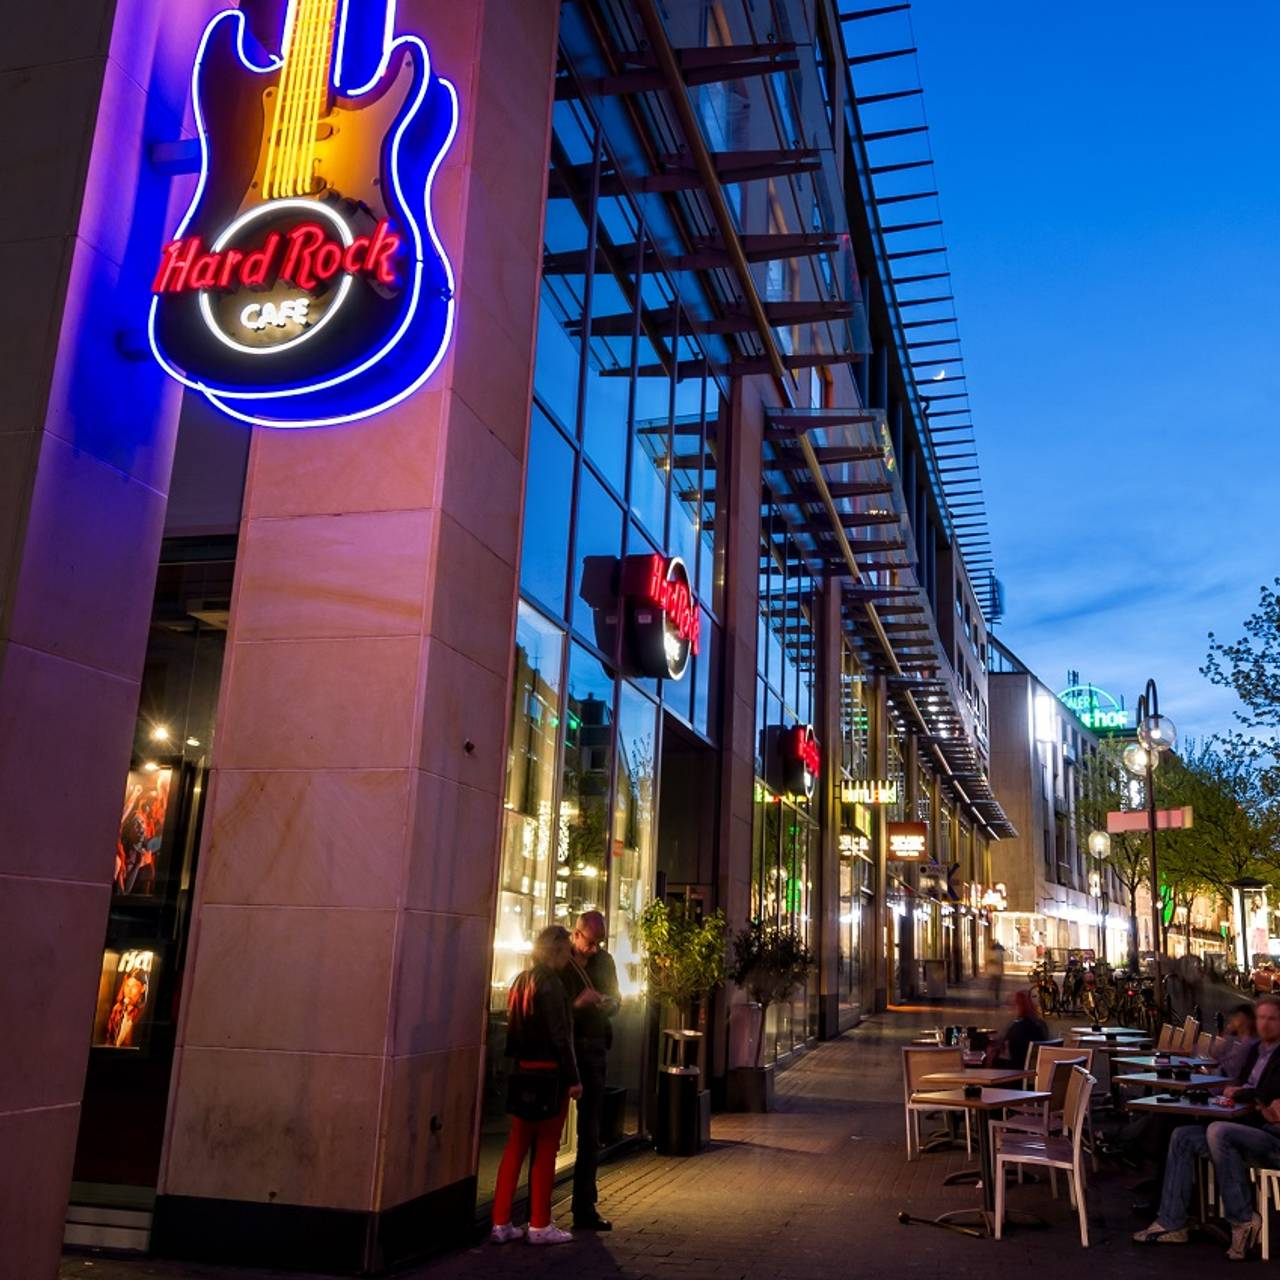 hard rock cafe frankfurt